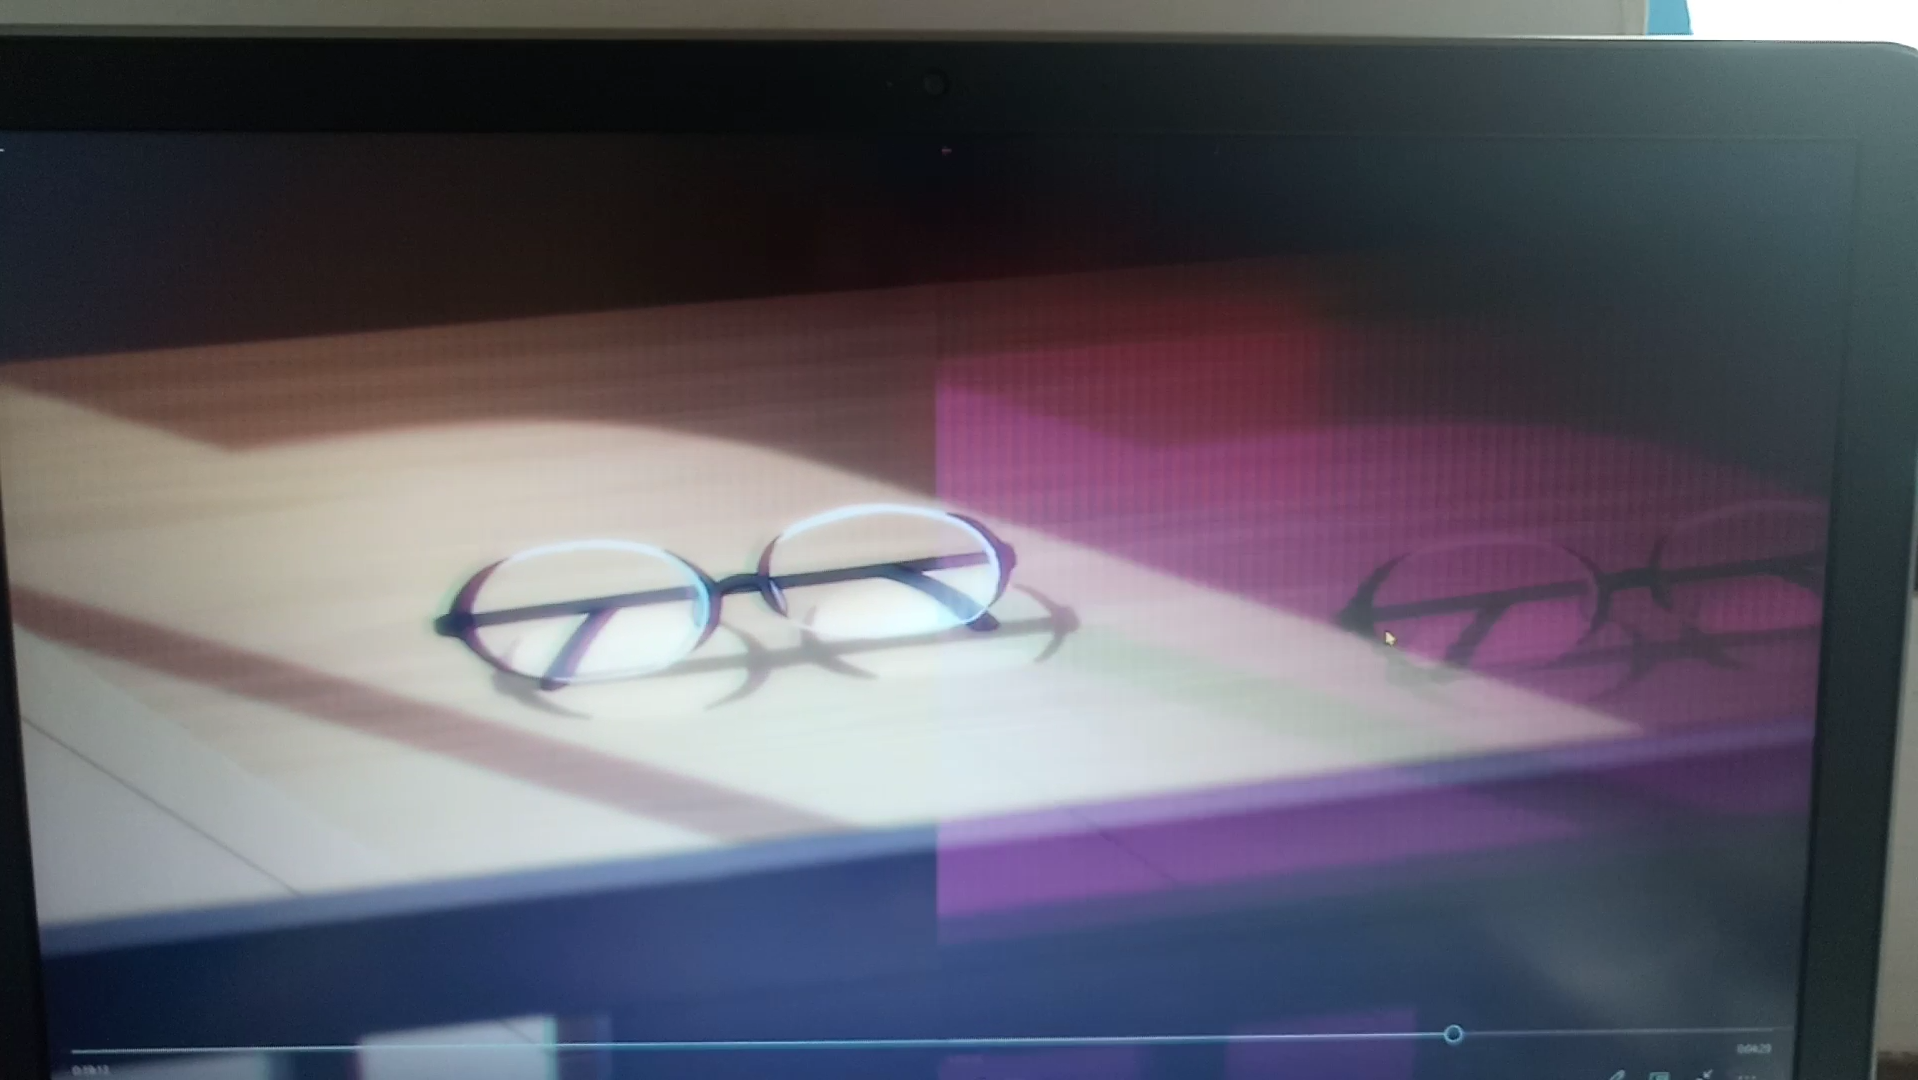 Purple gridlines when playing videos in full screen